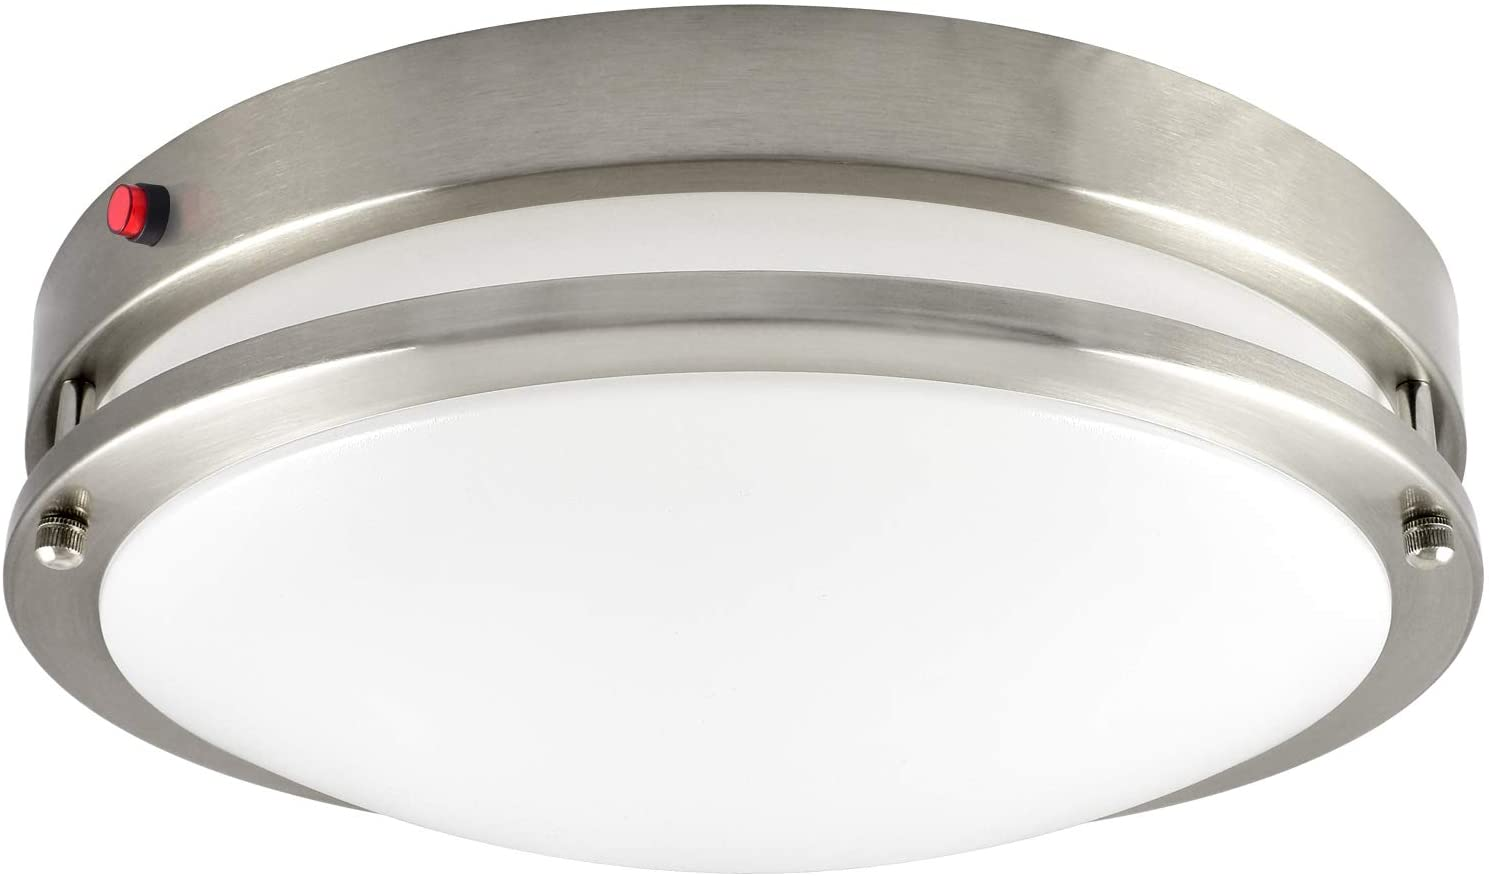 Luxrite 14 Inch LED Flush Mount Ceiling Light with Emergency Battery Backup, CCT Color Temperature Selectable 2700K | 3000K | 3500K | 4000K | 5000K, Dimmable, 18W, 1440 Lumens, ETL Listed, Damp Rated